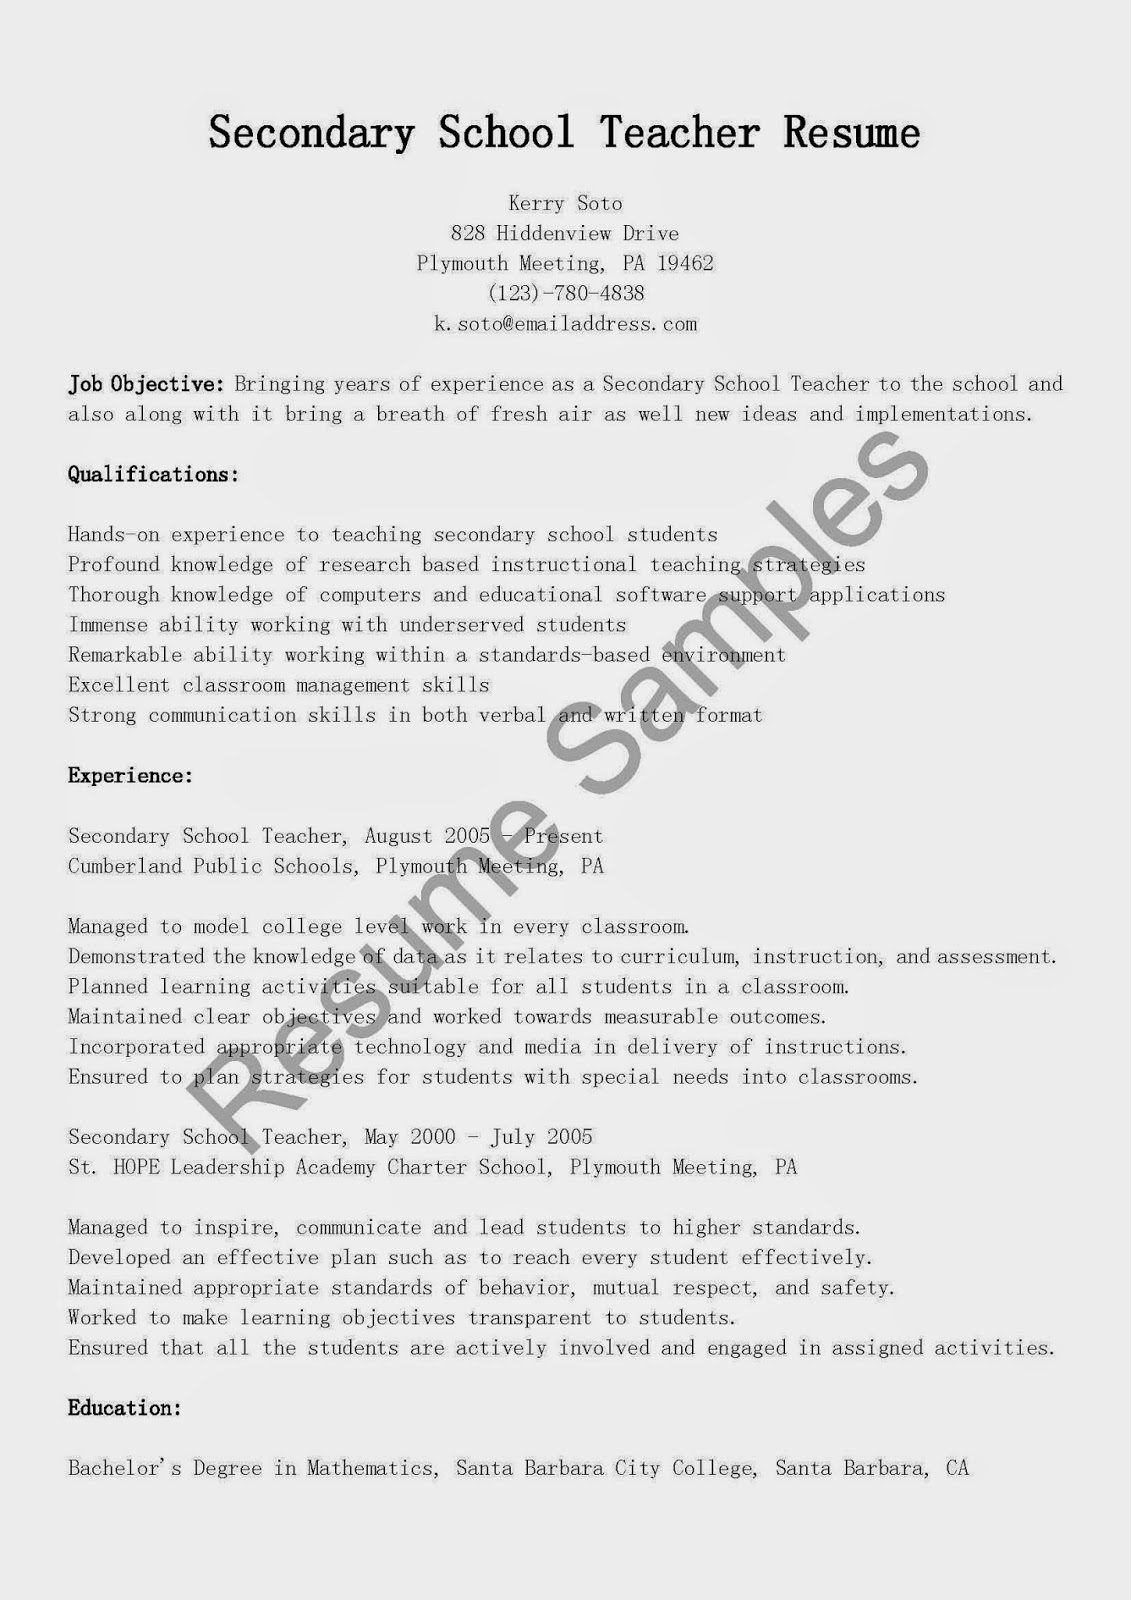 Secondary school teacher resume